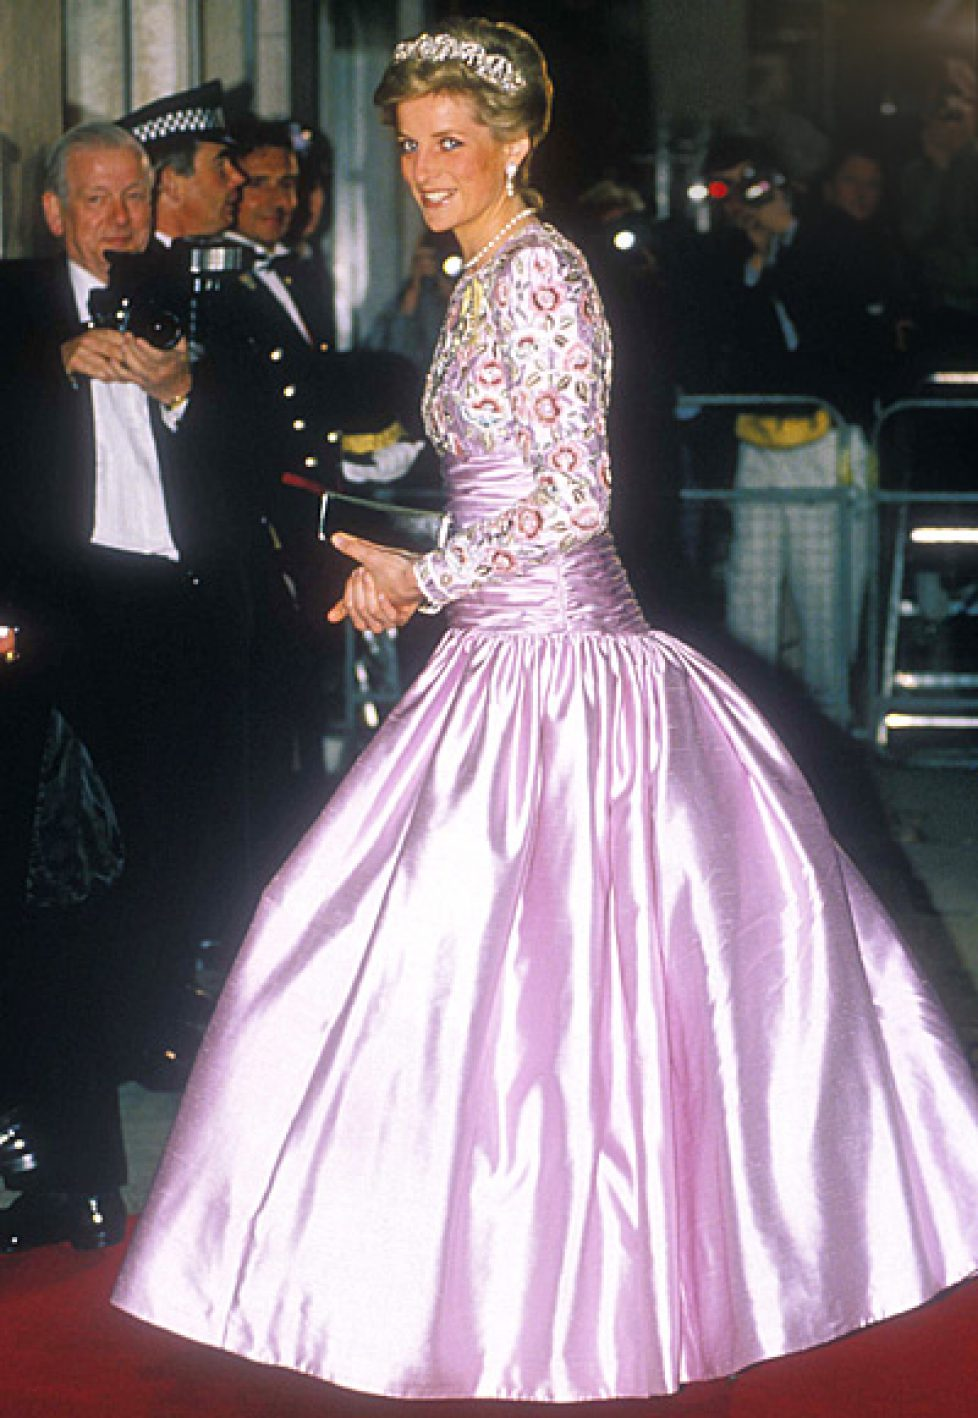 040111-princess-diana-07a